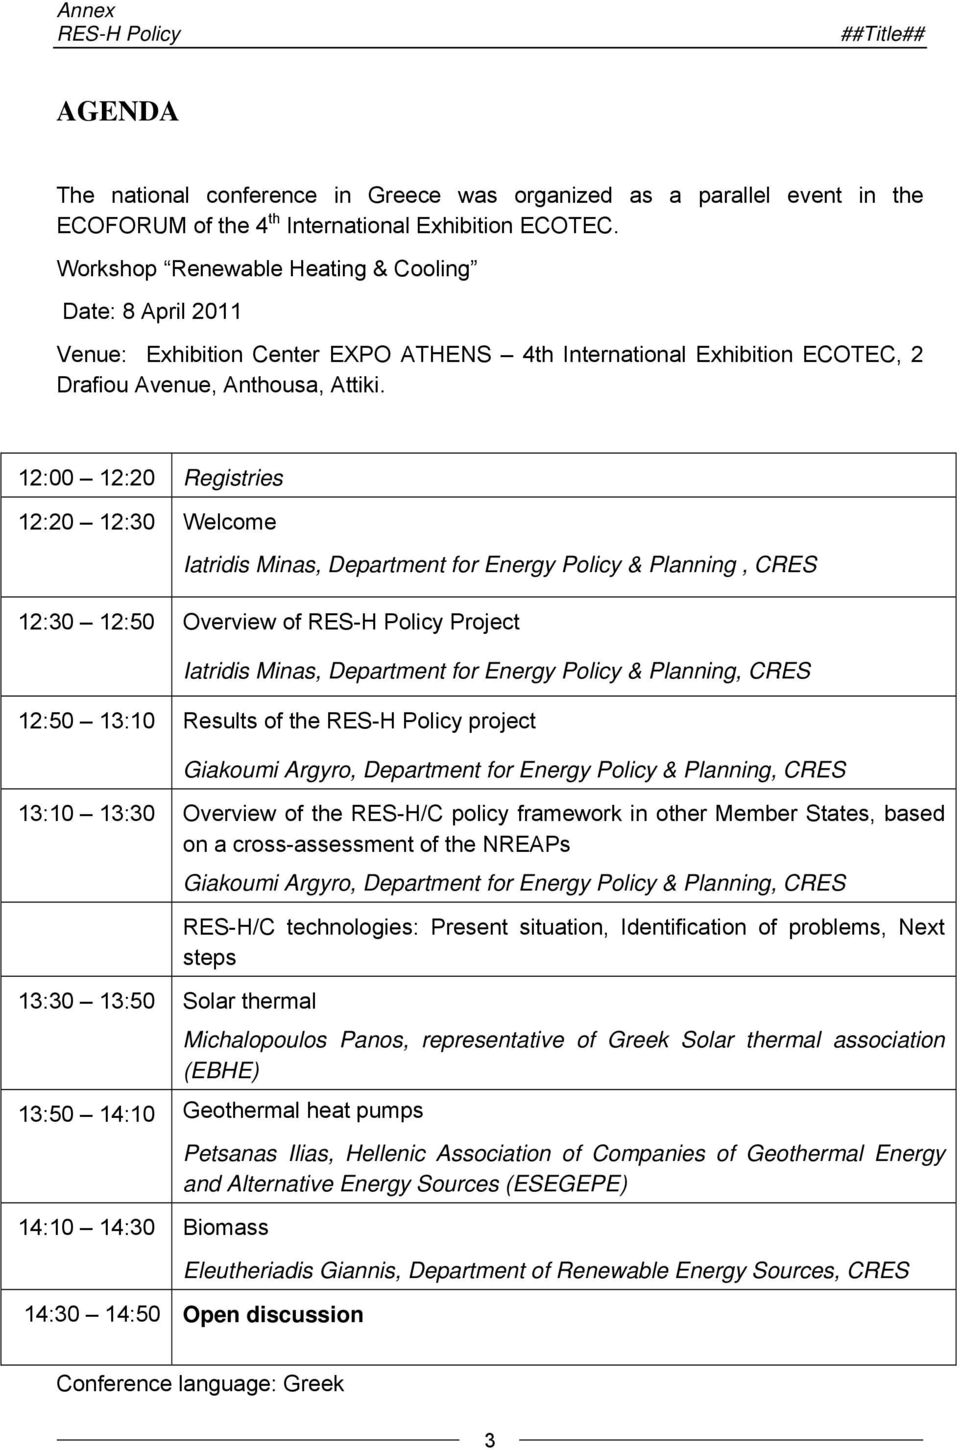 12:00 12:20 Registries 12:20 12:30 Welcome Iatridis Minas, Department for Energy Policy & Planning, CRES 12:30 12:50 Overview of RES-H Policy Project Iatridis Minas, Department for Energy Policy &